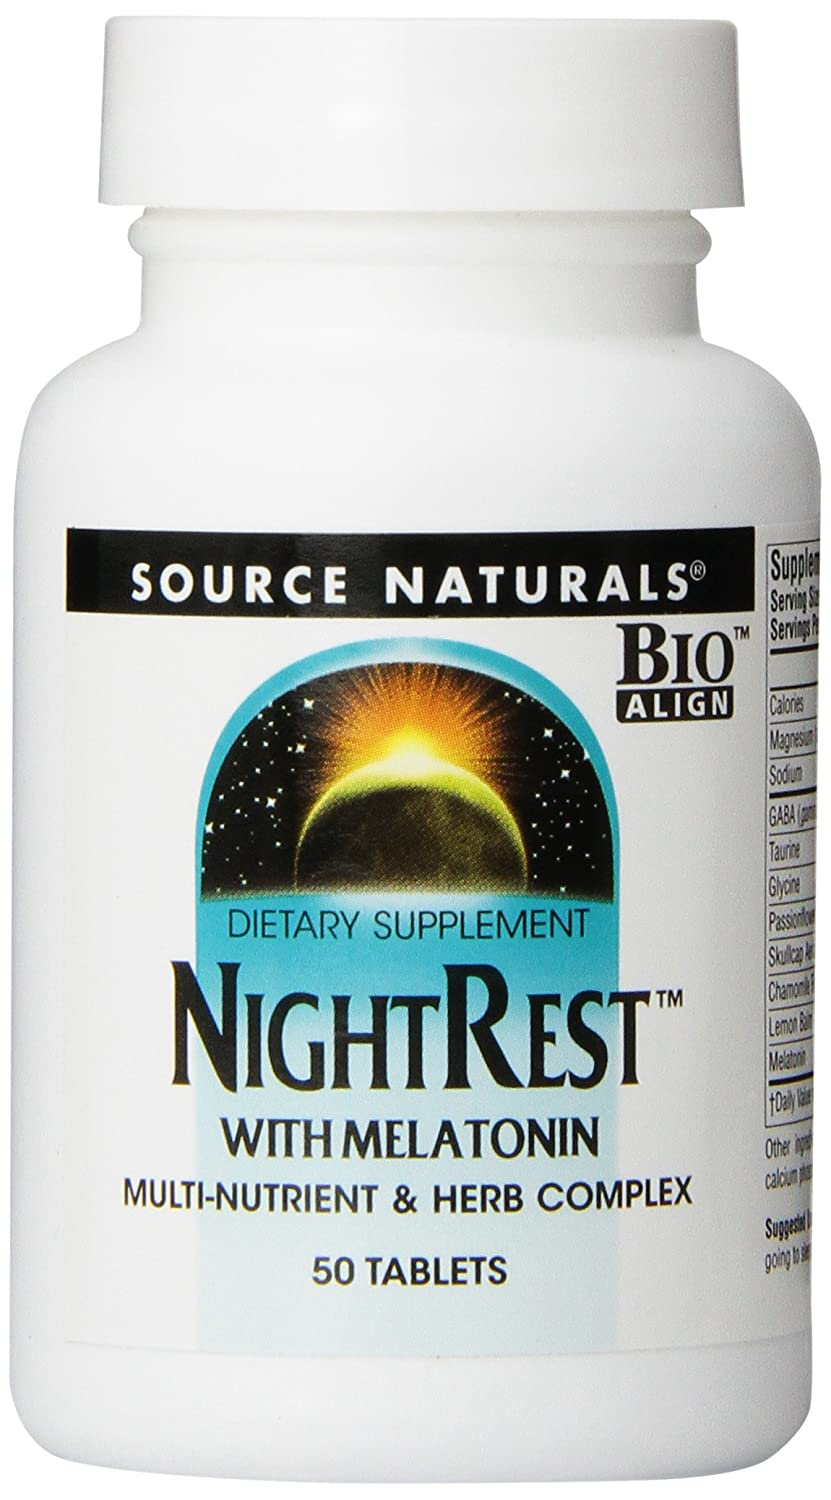 Amazon.com: Source Naturals NightRest with Melatonin, 50 Tablets (Pack of 2): Health & Personal Care